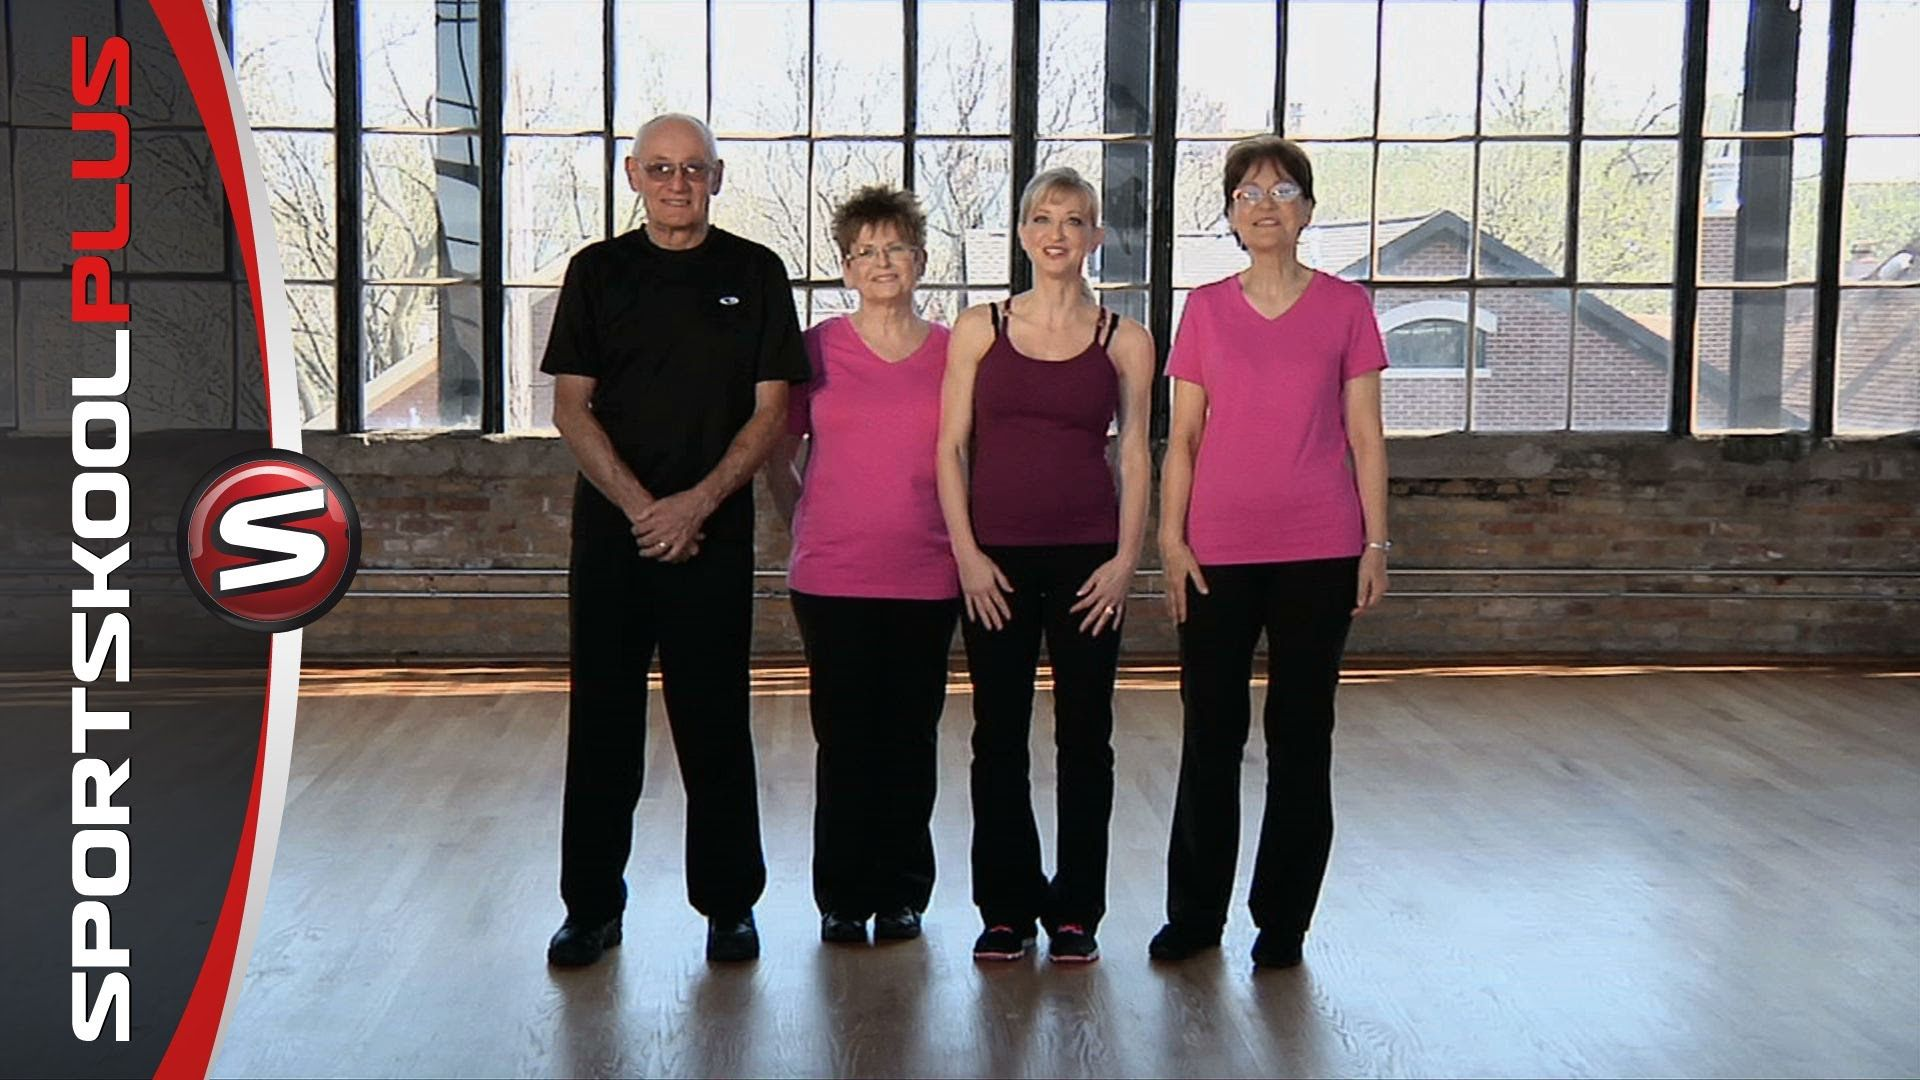 Cardio Workout for Seniors with Fitness Coach Angie Miller ...